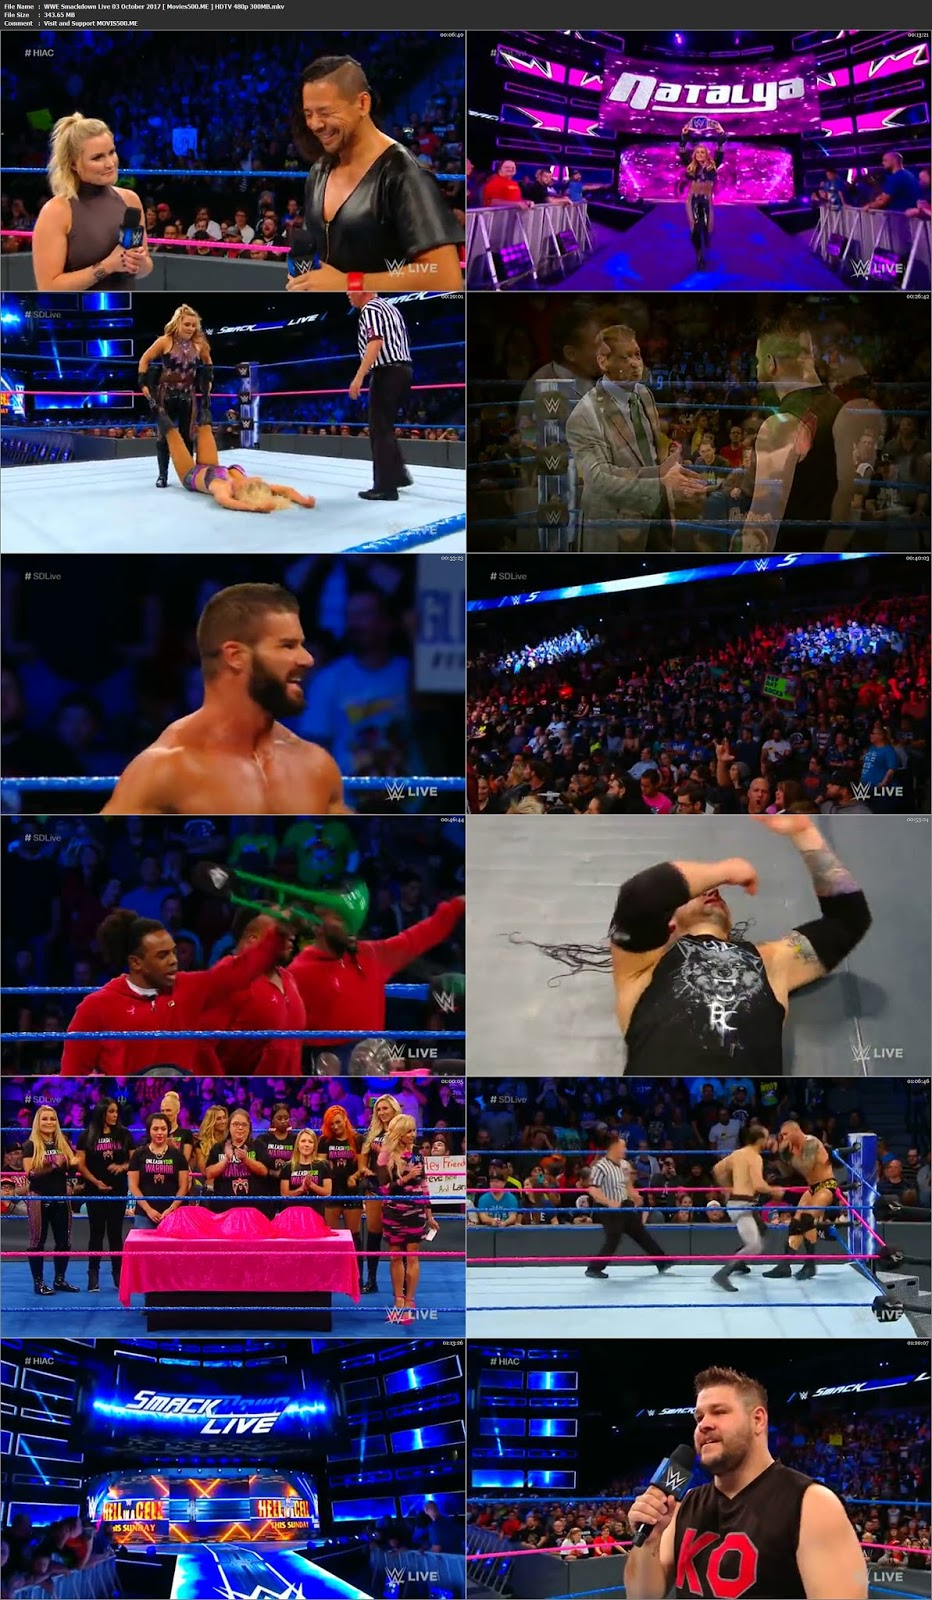 WWE Smackdown Live 03 October 2017 HDTV 300MB Download 480p